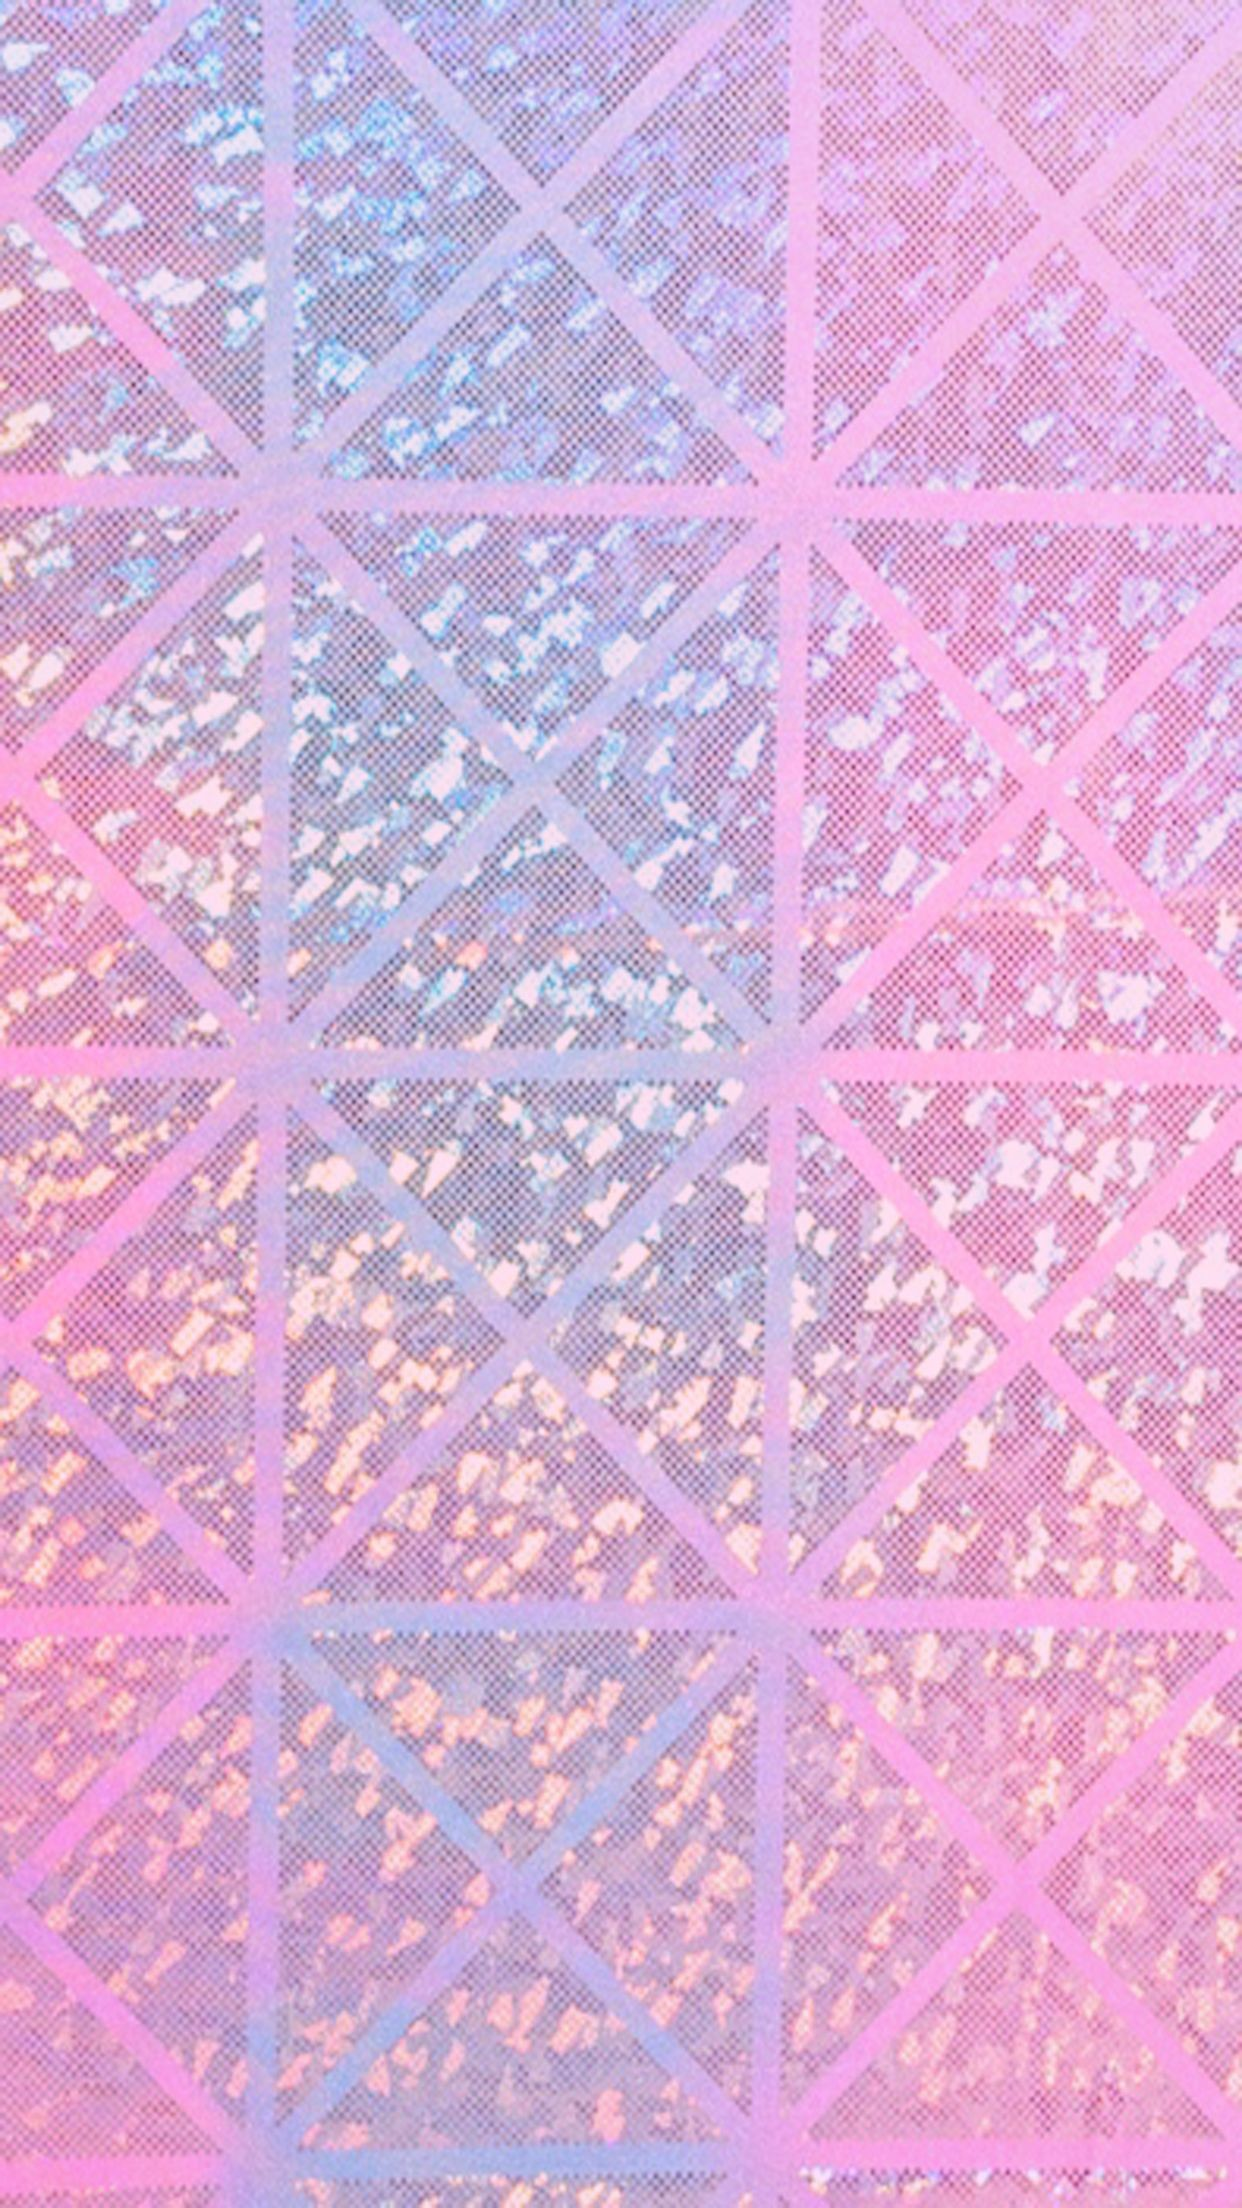 Res: 1242x2208, Iridescent Holographic Wallpaper, iPhone, Android, HD, Background, Pink,  Purple,